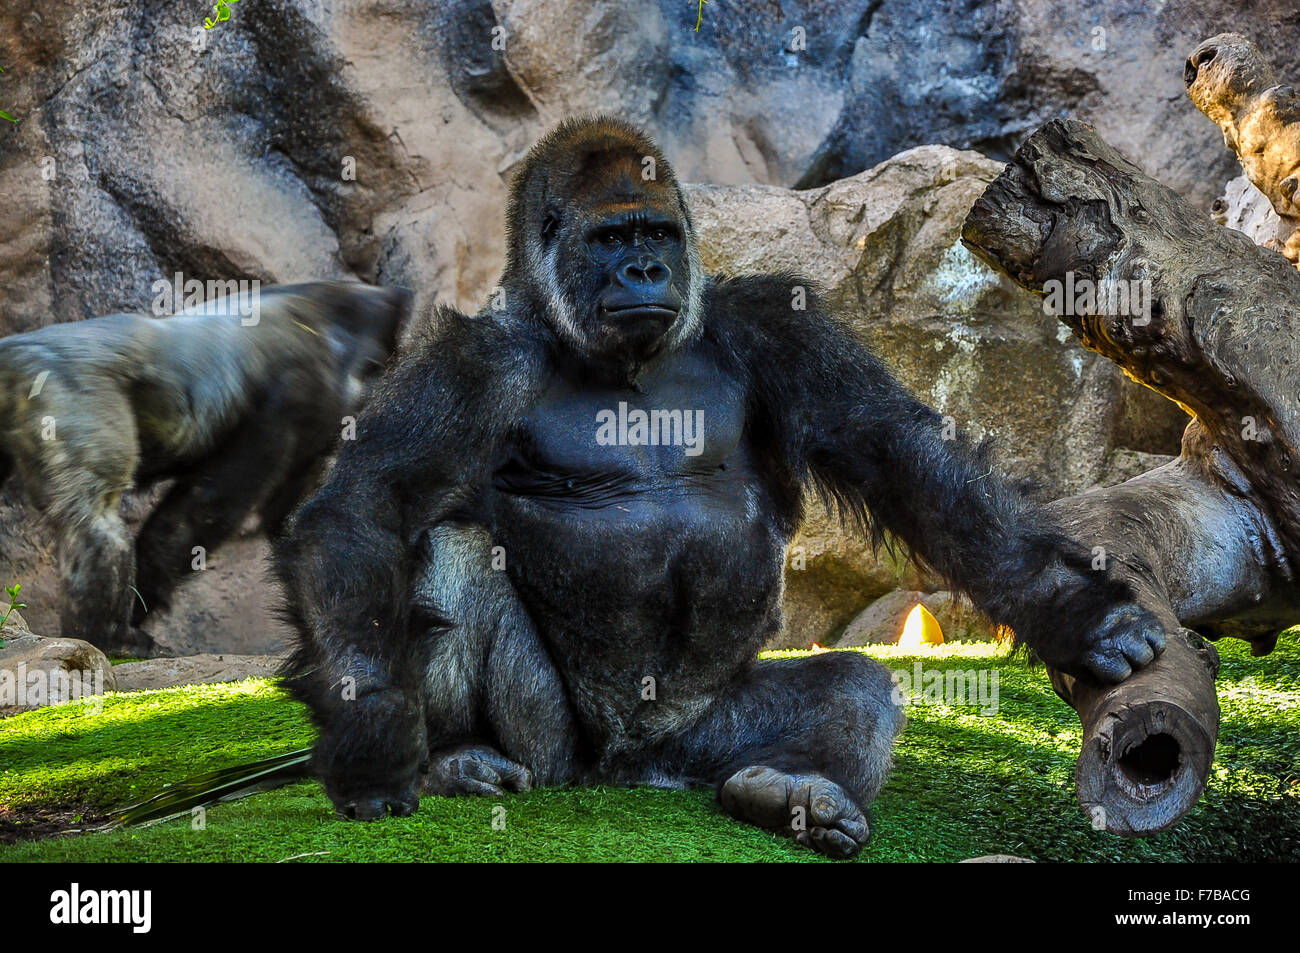 Dans le zoo gorille majestueux Photo Stock